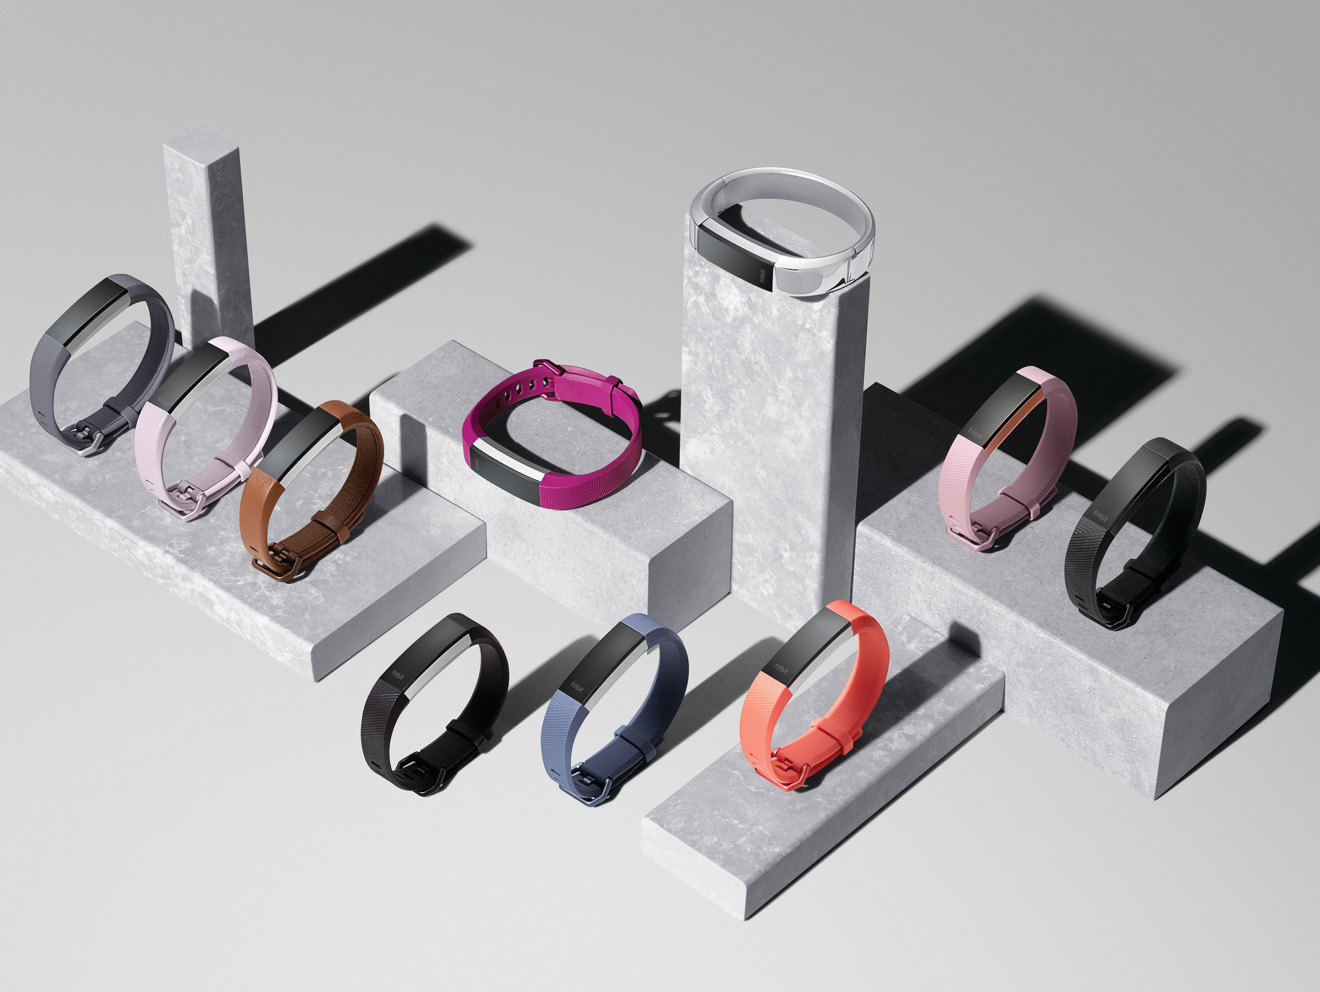 Fitbit intros iPhone-connected Alta HR, plans sleep tracking updates for current wearables